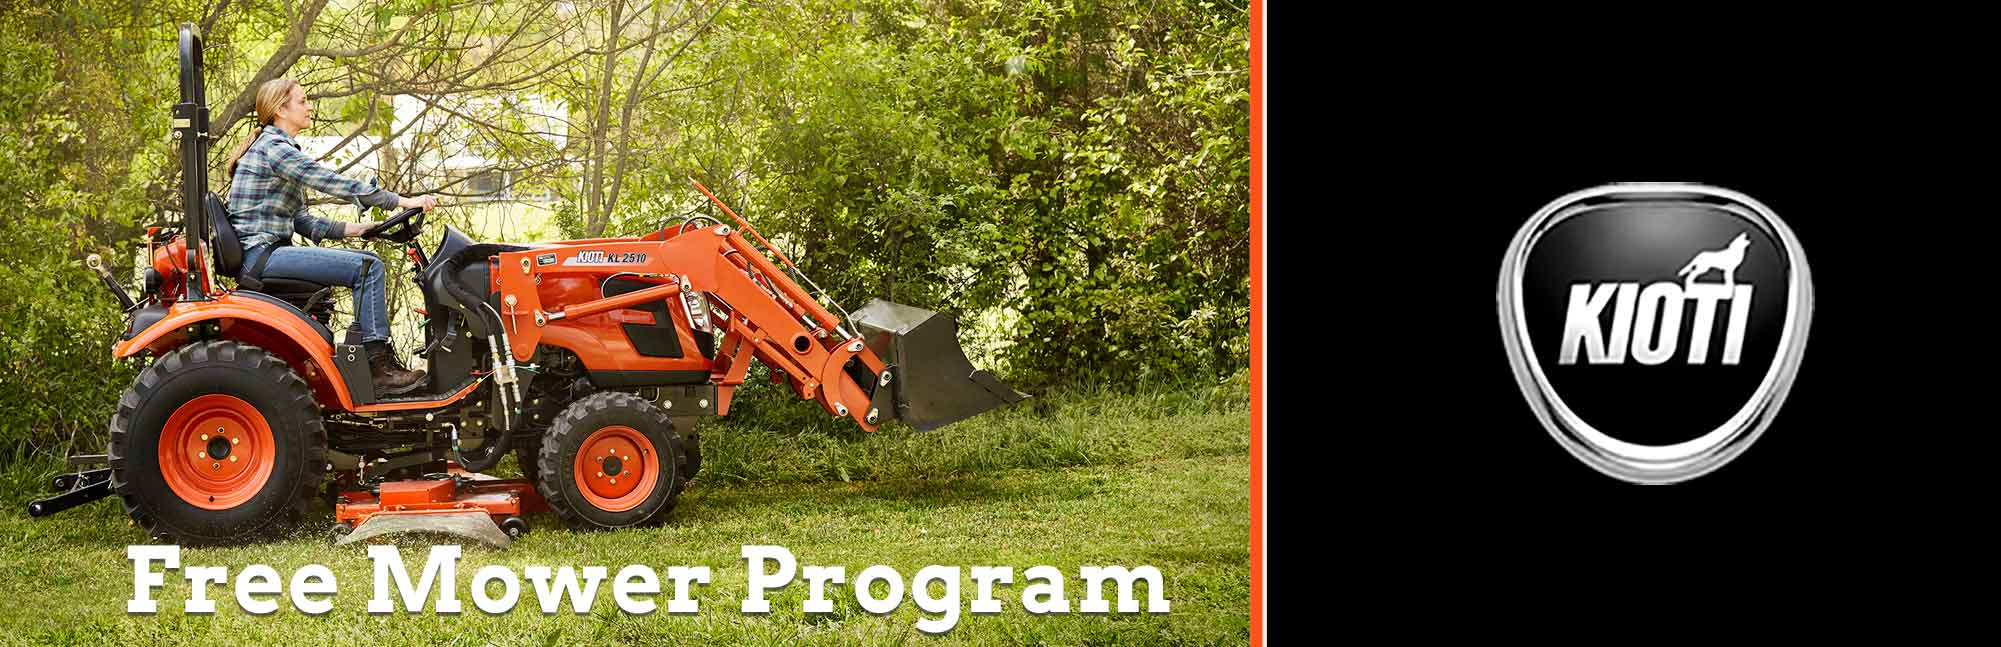 KIOTI: Free Mower Program